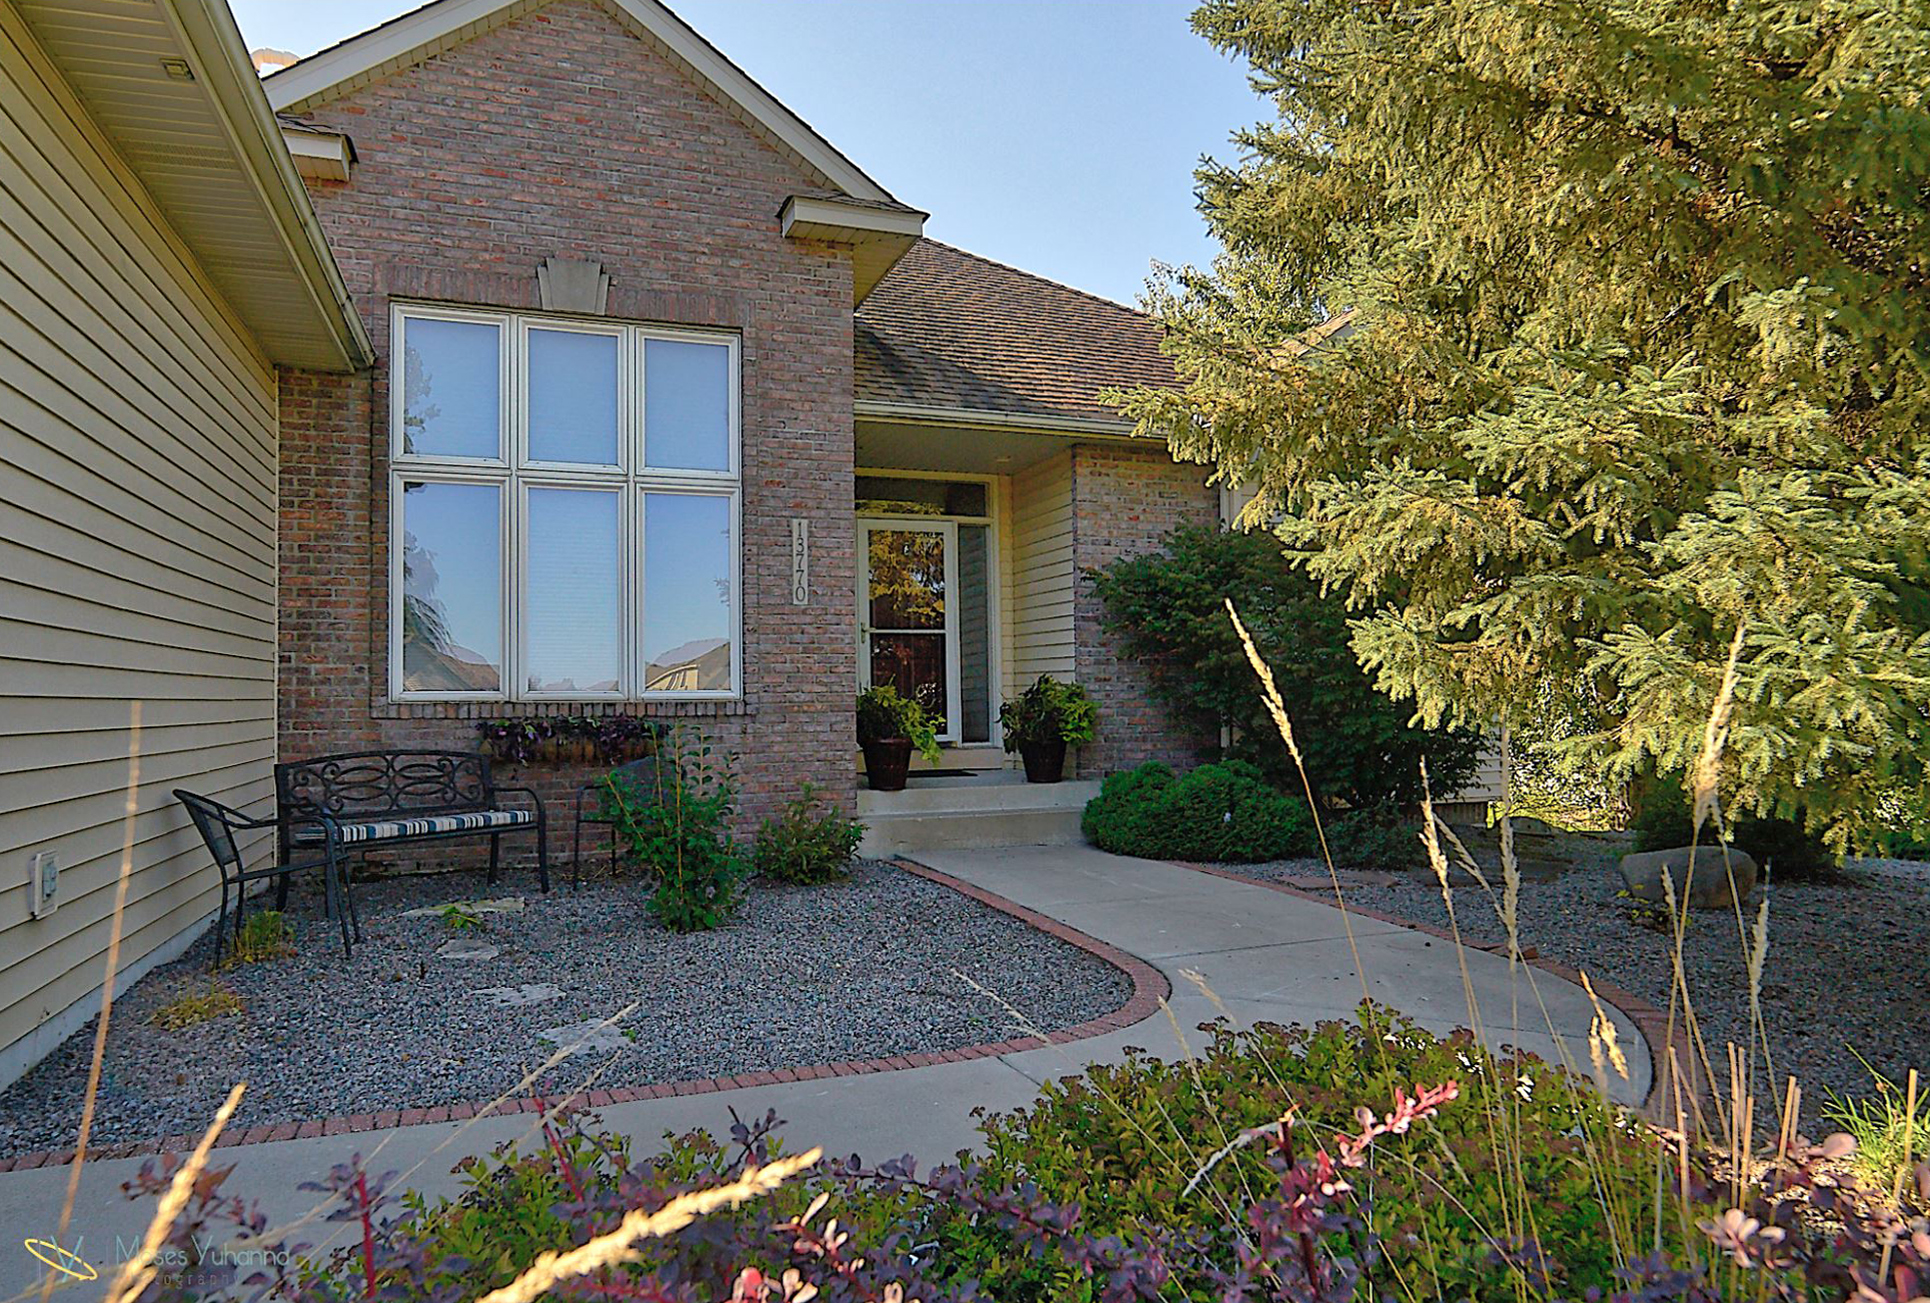 13770-Cottonwood-St-NW-Andover 1 front.jpg